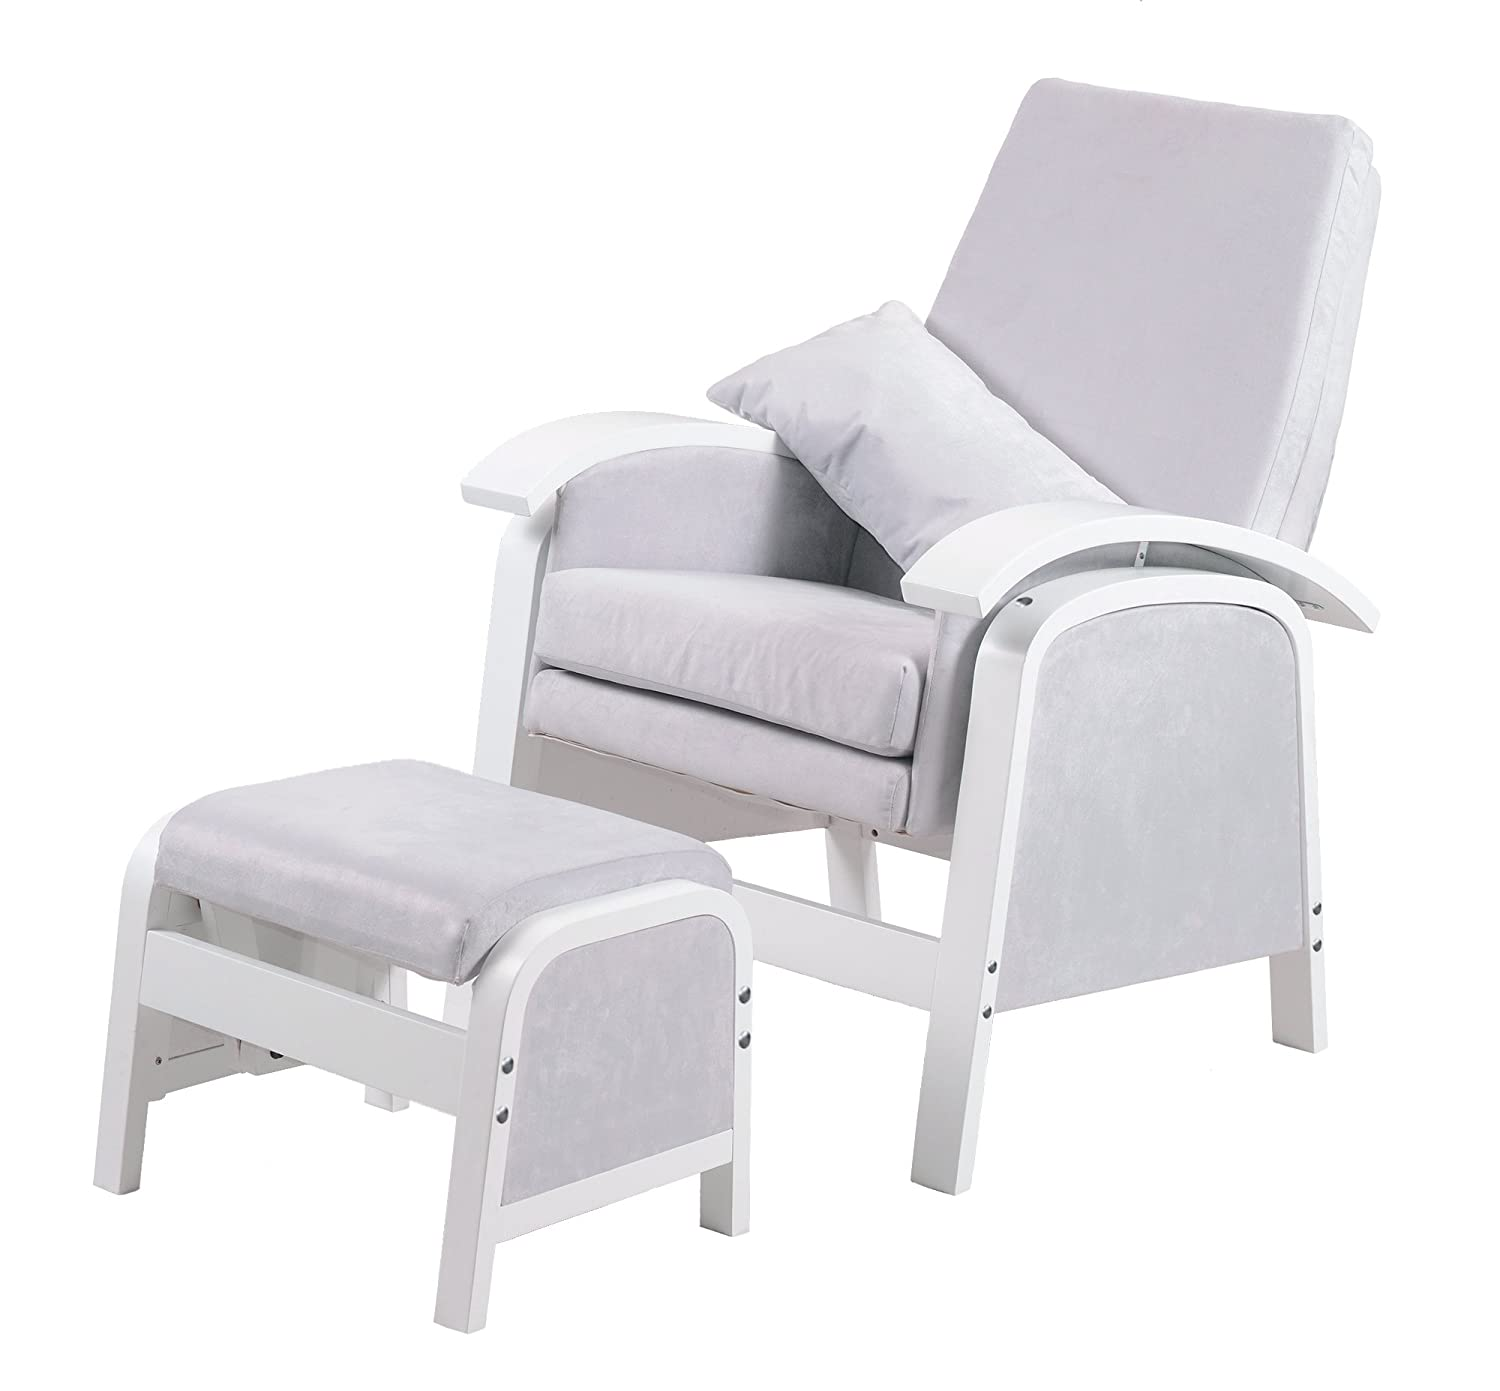 Kub Rosewell Glider and Footstool White Amazon Baby